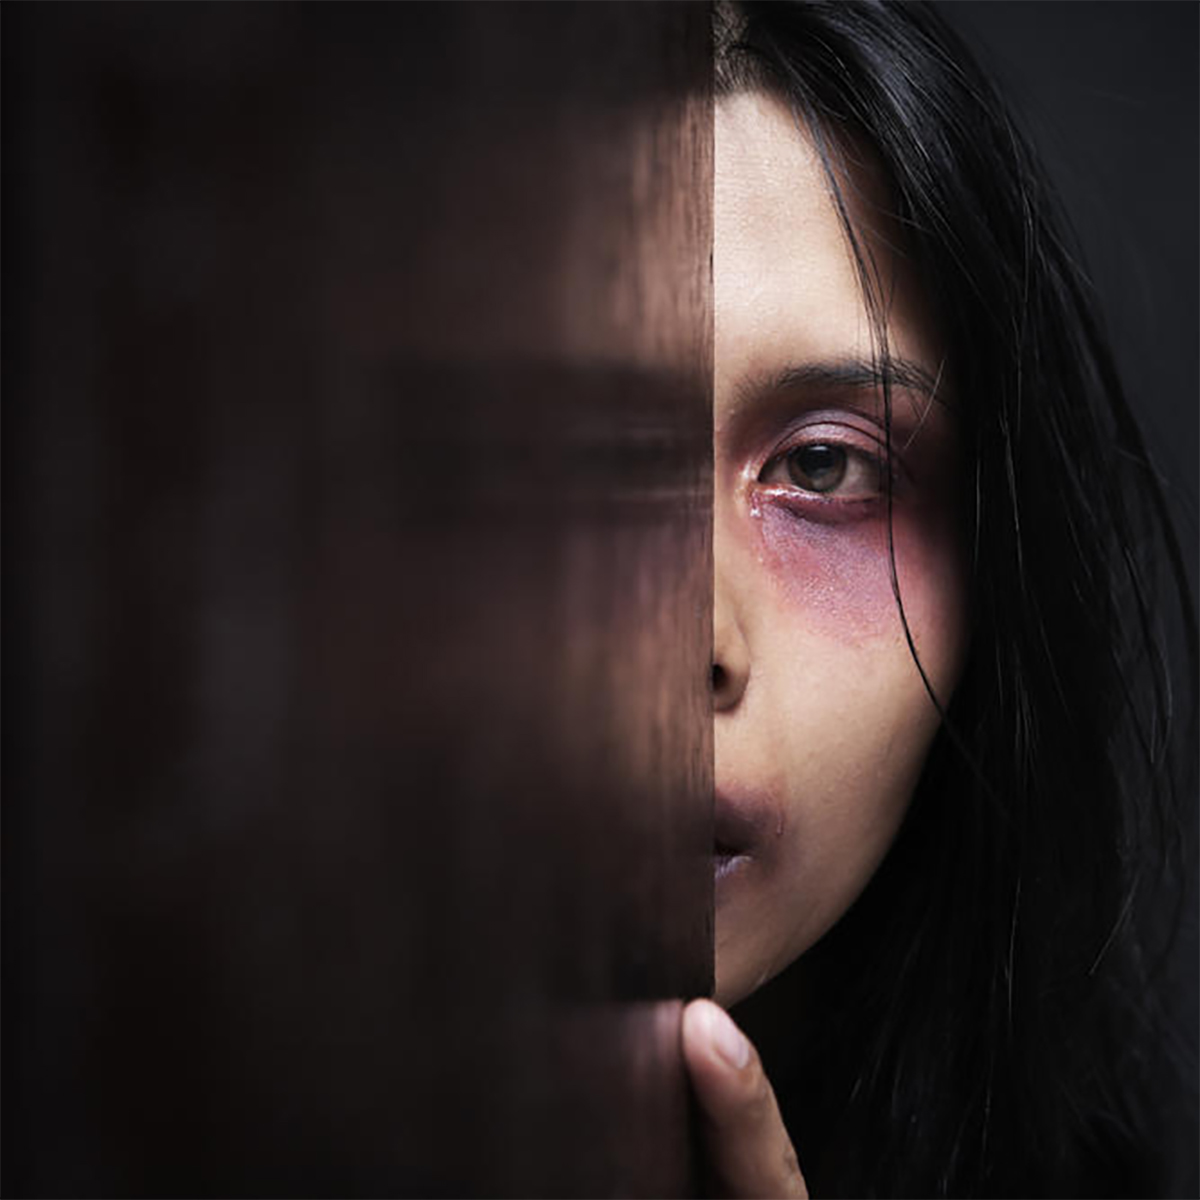 Domestic Violence in Our Community